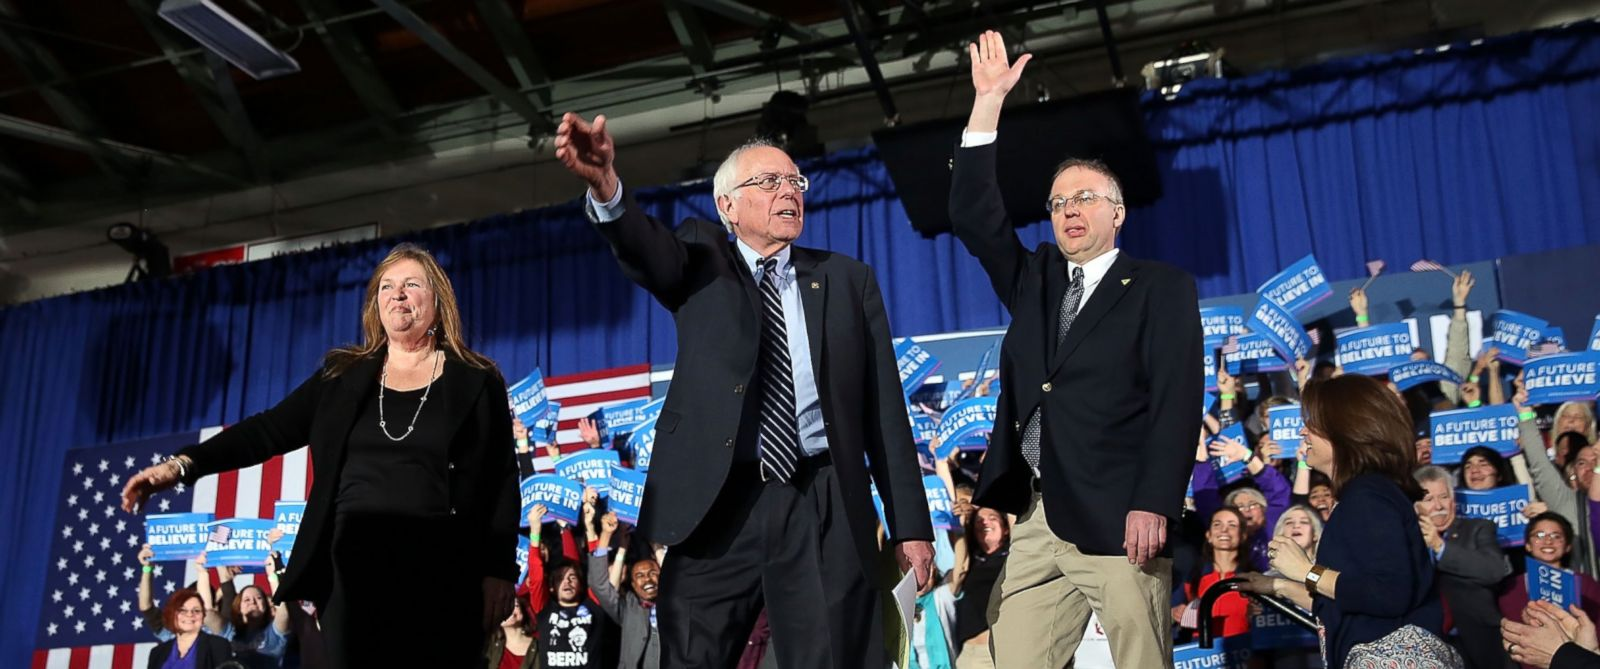 PHOTO: Democratic presidential candidate Sen. Bernie Sanders walks ontostage with his wife Jane OMeara Sanders after declaring victory over Hillary Clinton in the New Hampshire Primary, Feb. 9, 2016 in Concord, N.H.